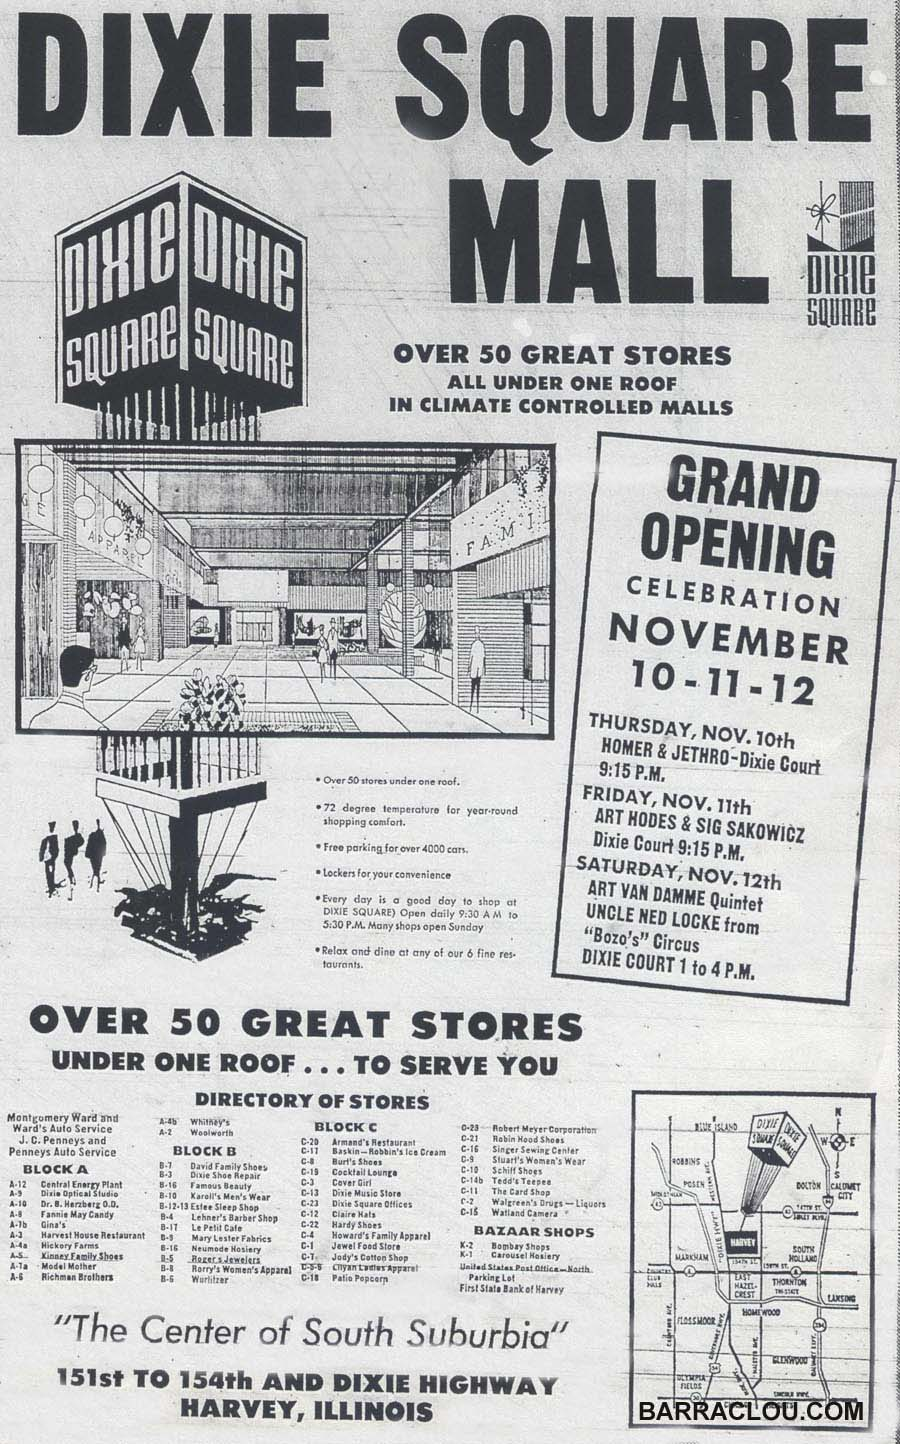 Dixie Square Mall - The Full Wiki